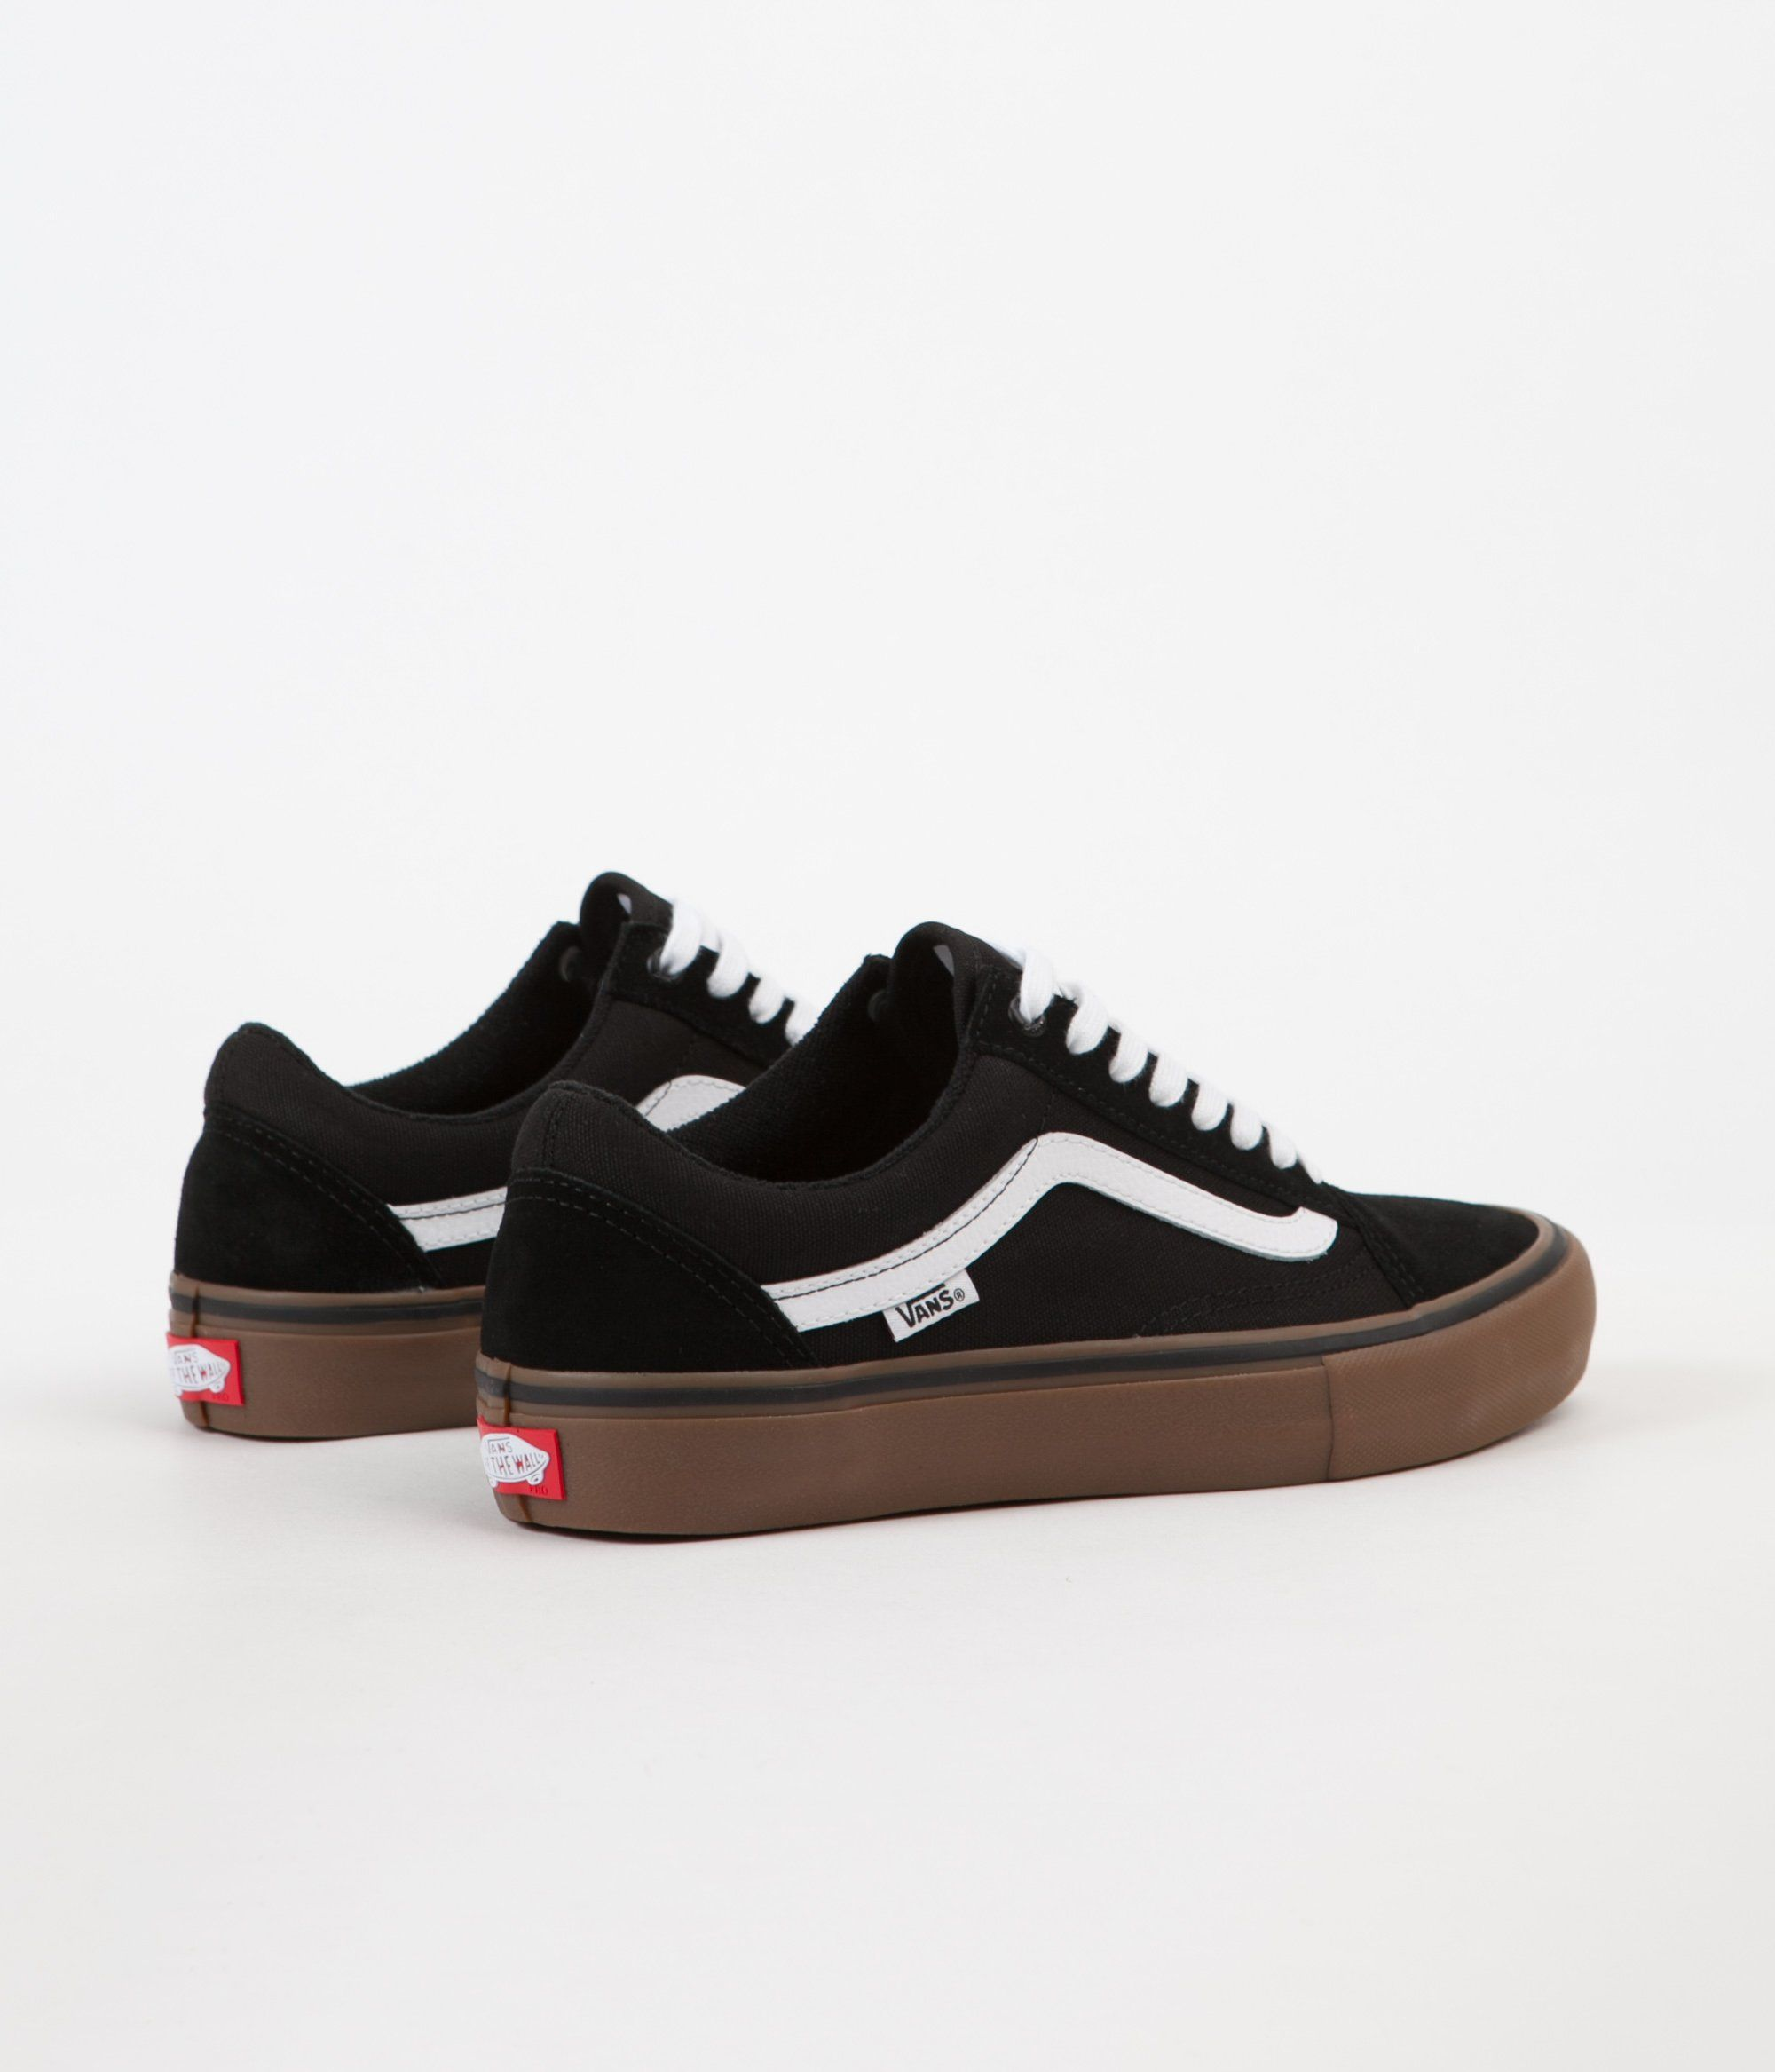 4a7633b2cb190 Vans Old Skool Pro Shoes - Black / White / Medium Gum in 2019 ...